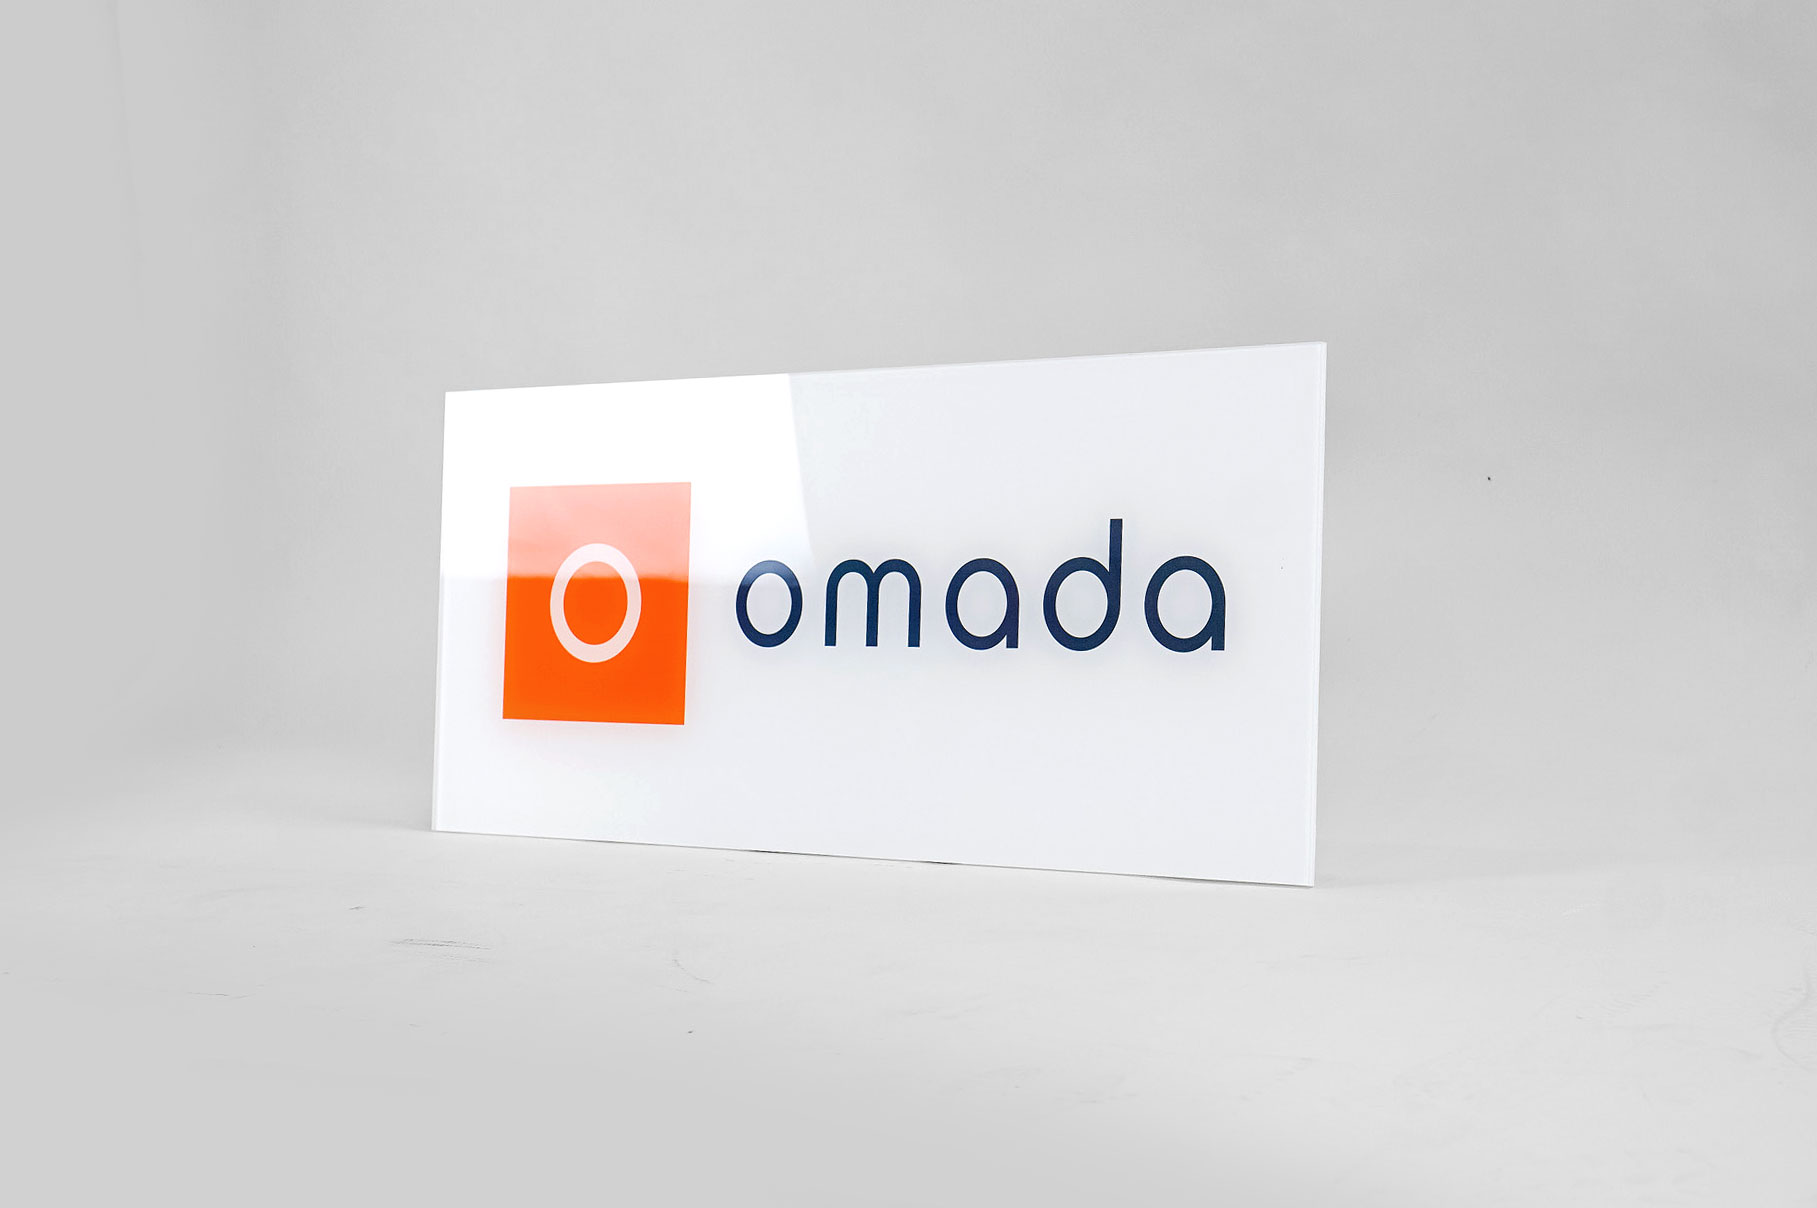 Glass-like, printed panel sign for Omada Health, a San Francisco based company pioneering digital behavioral medicine.